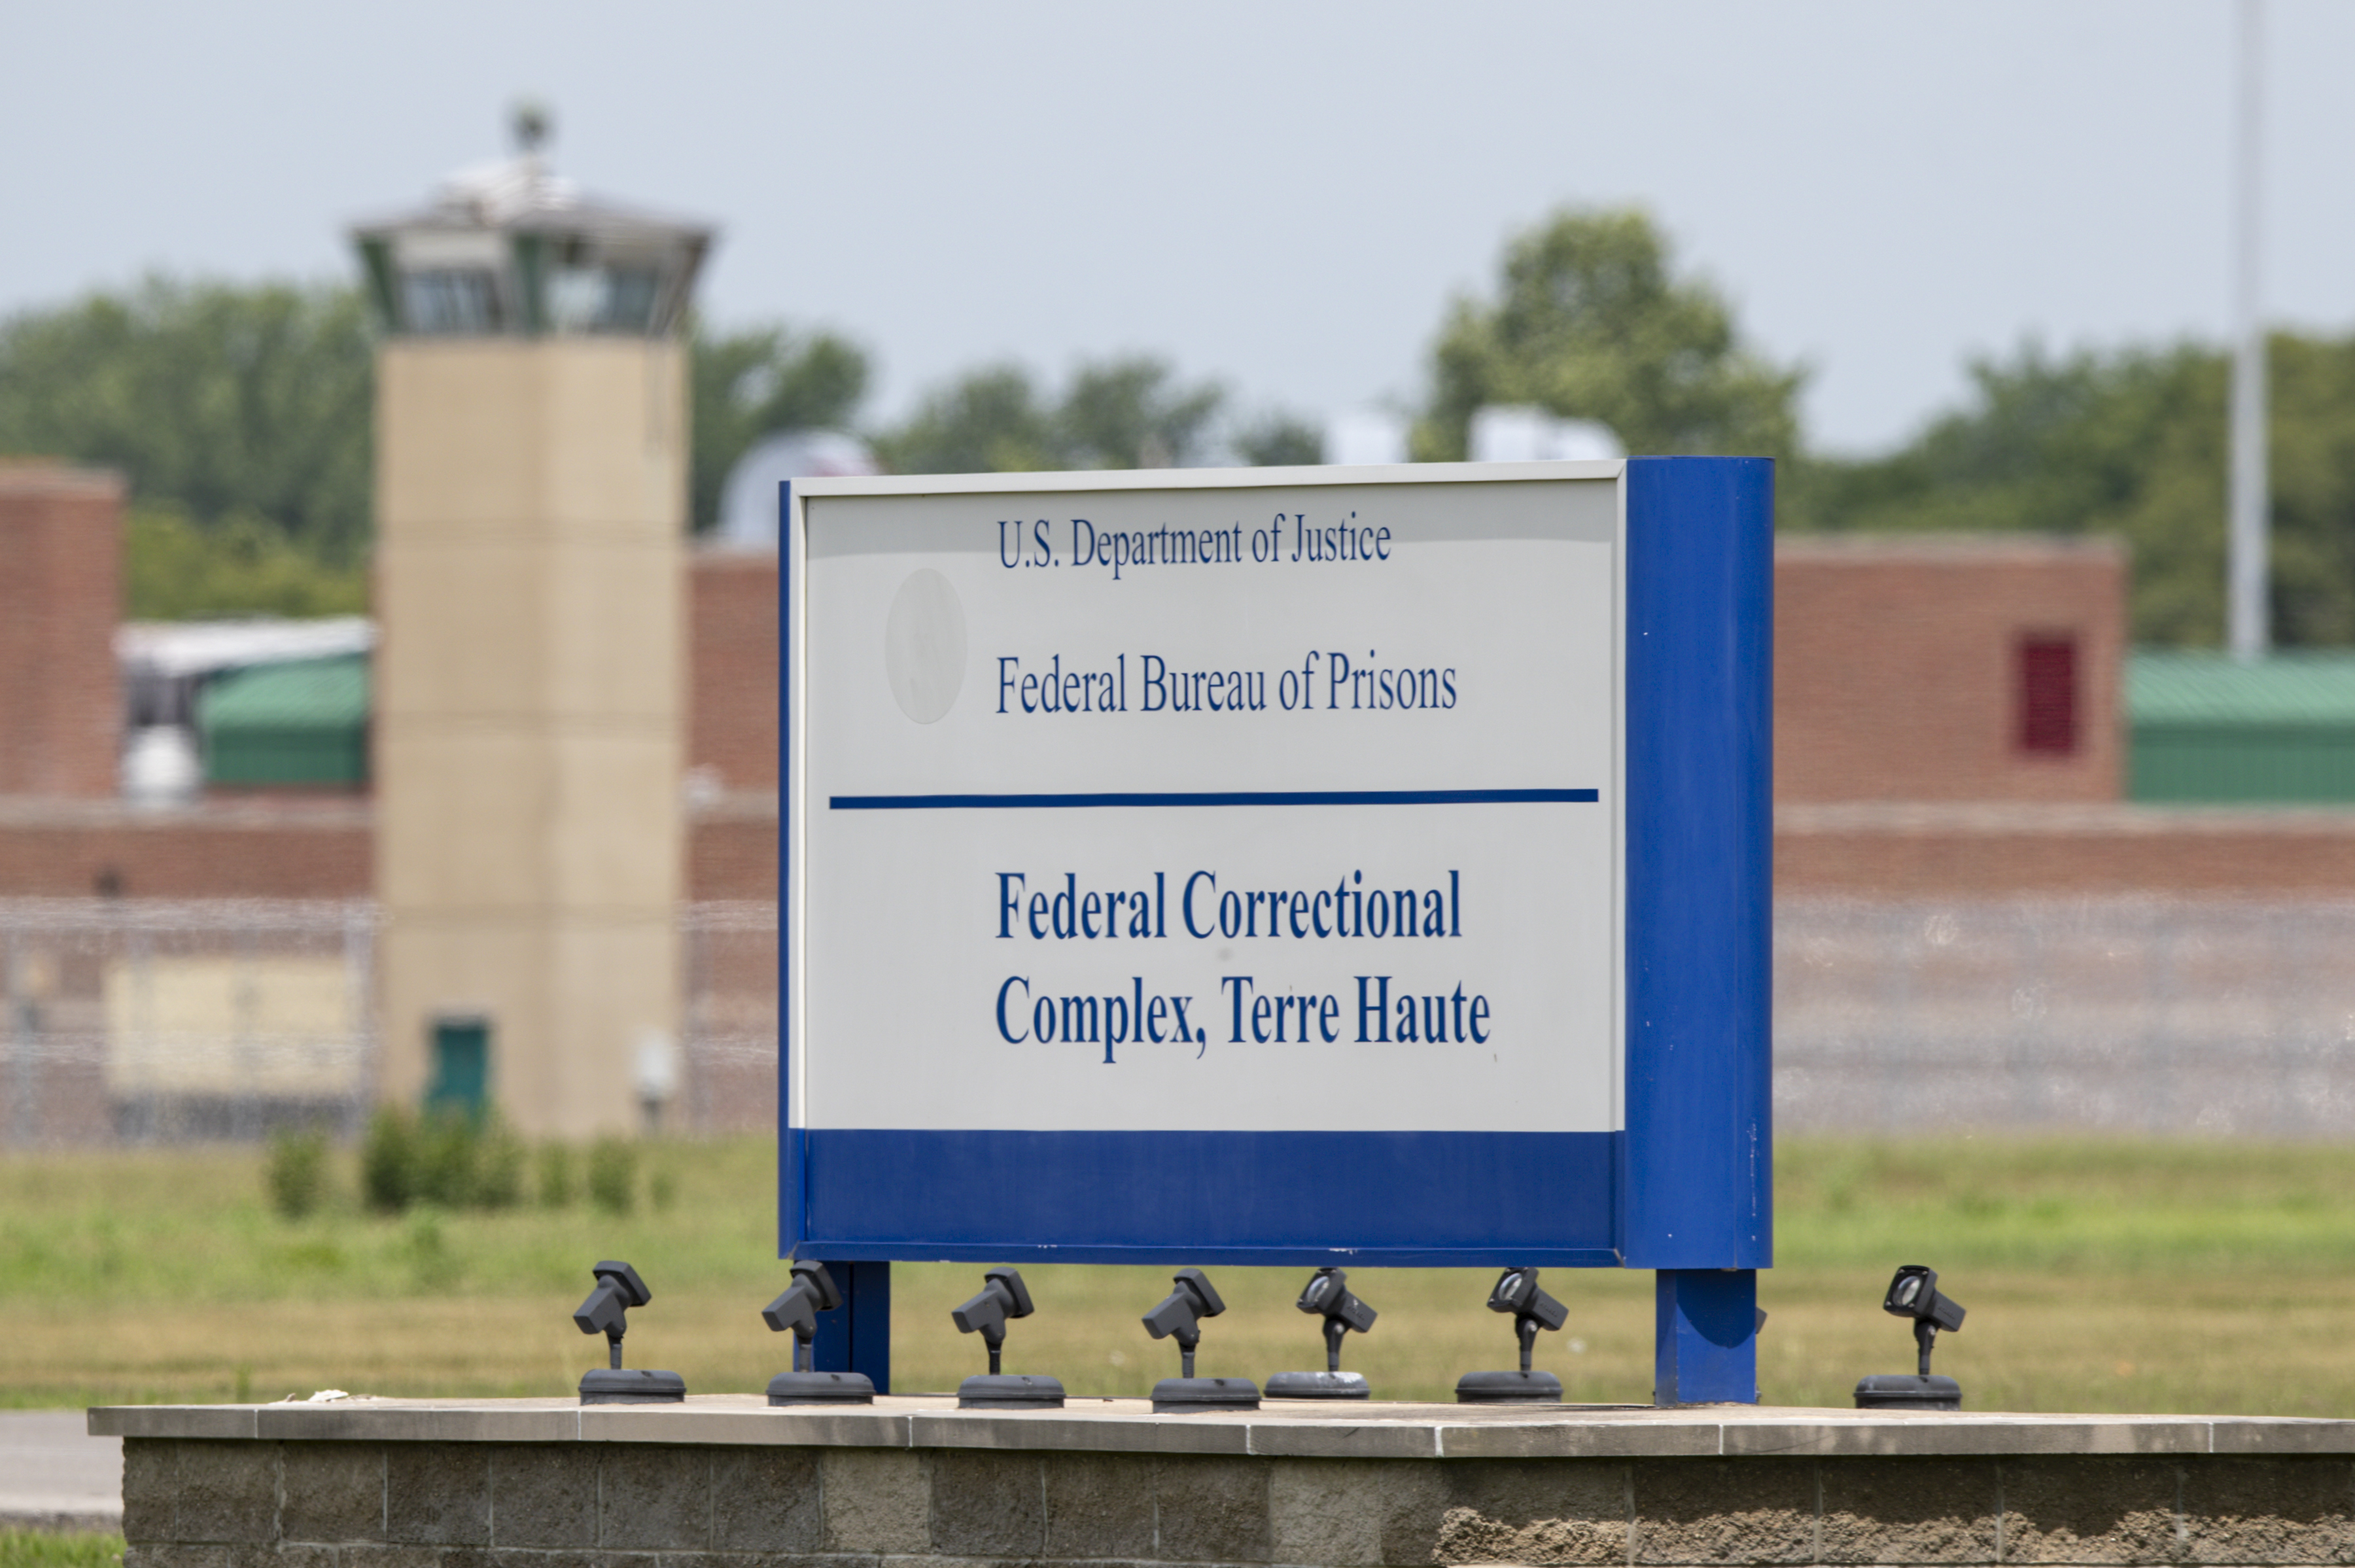 The entrance to the federal prison in Terre Haute, Ind., is seen on July 15, 2020.